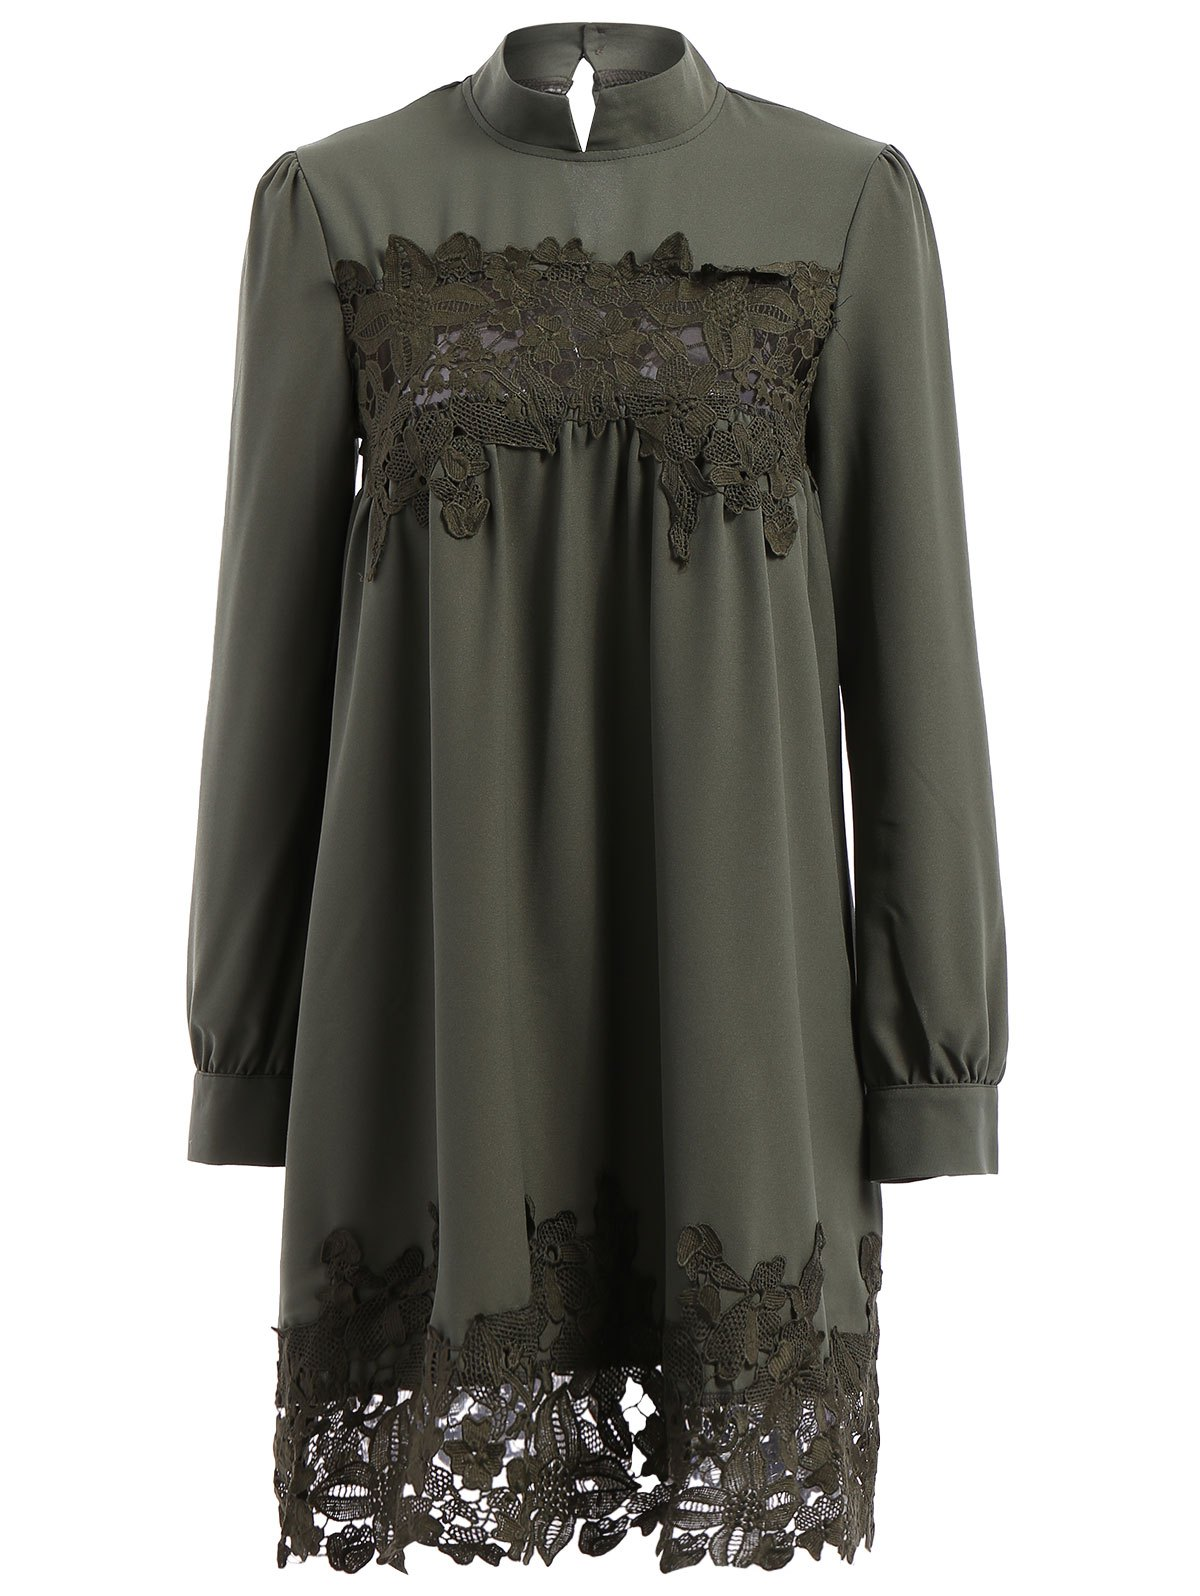 Retro Style Long Sleeve Stand Collar Lace Spliced Women's Dress - L ARMY GREEN